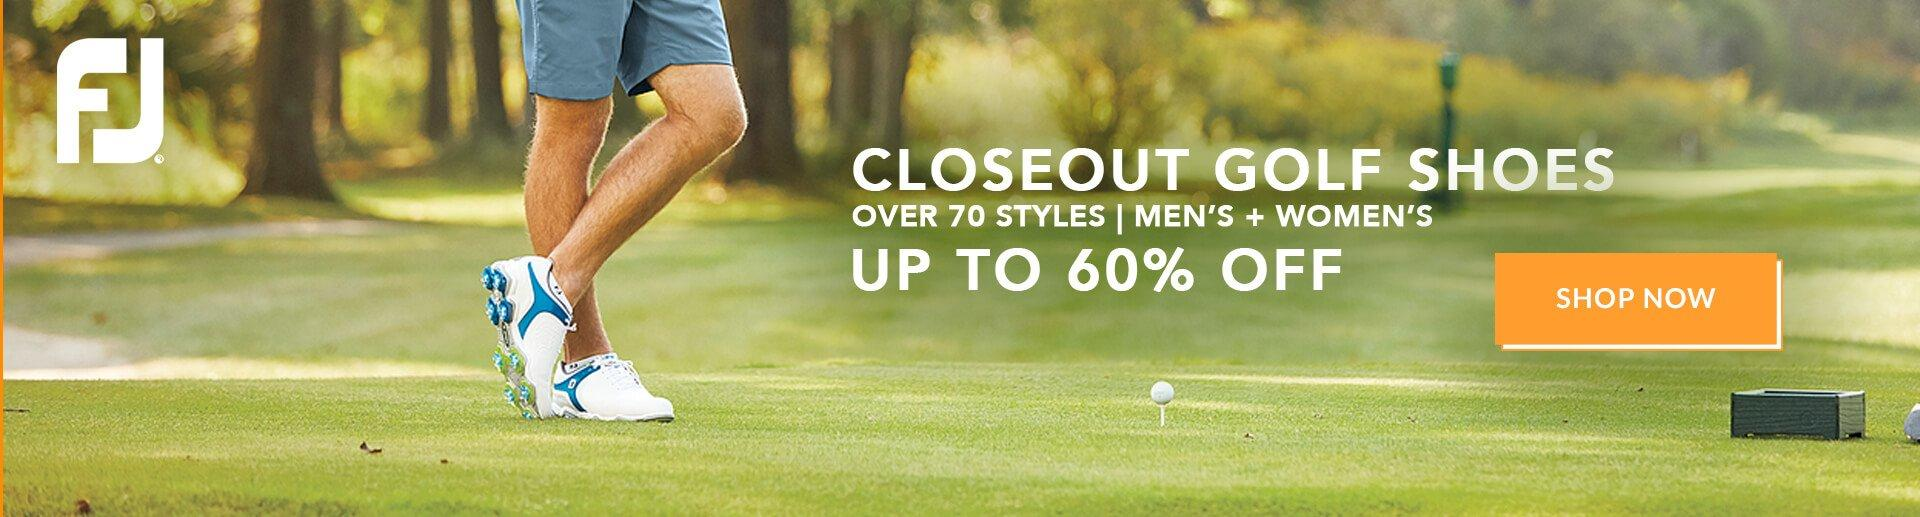 FootJoy Closeout Golf Shoes